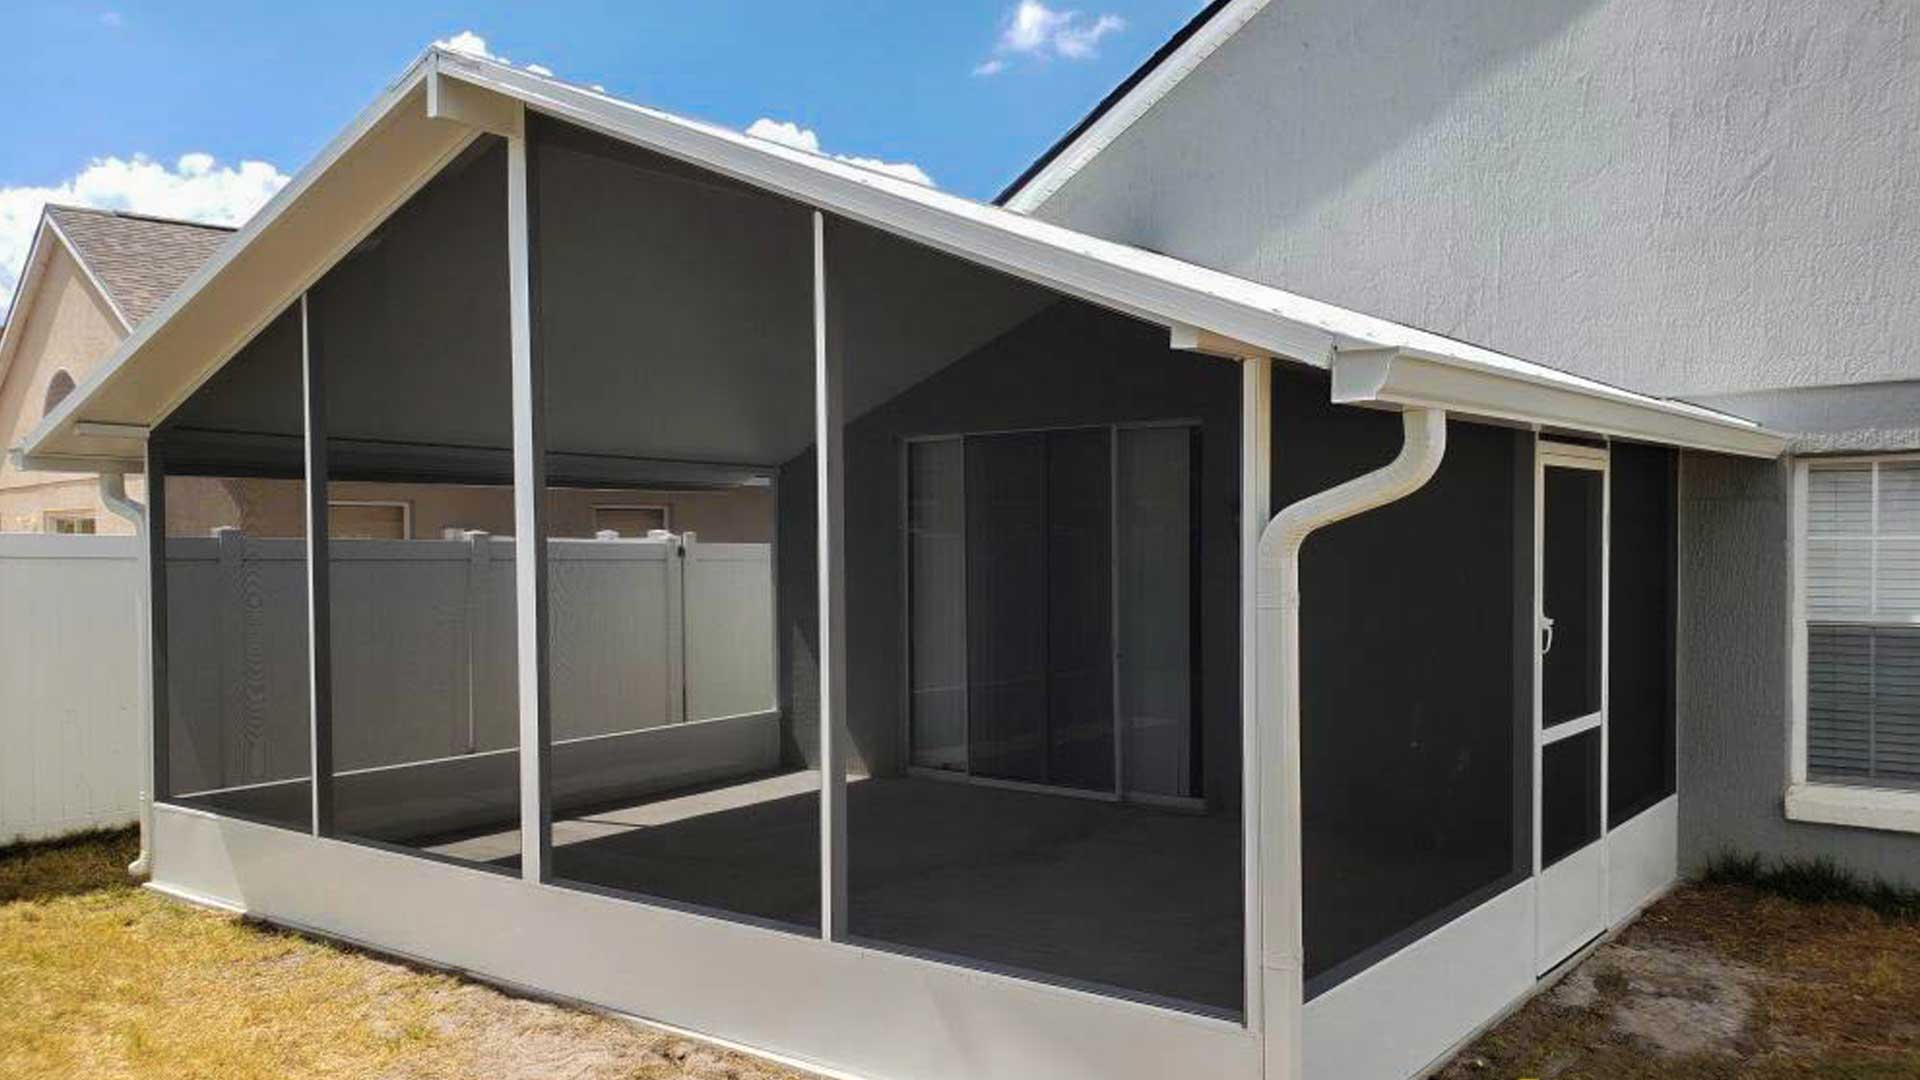 A new aluminum screen room constructed in the backyard of a home in Lakeland.